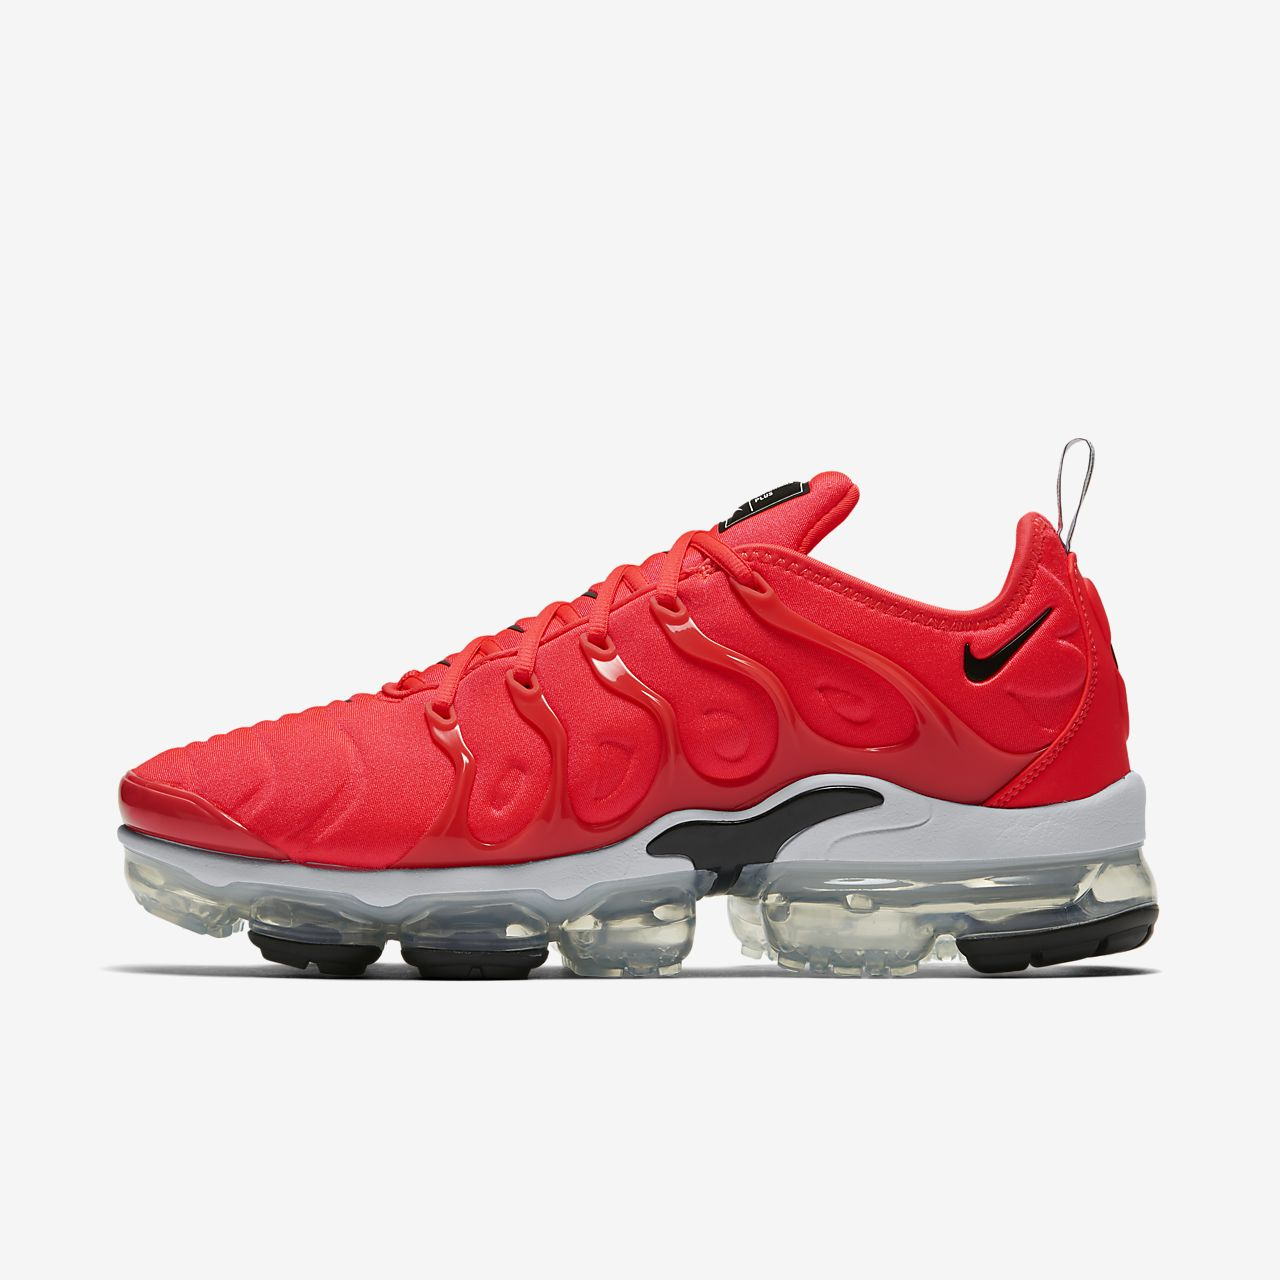 79a9033677b Nike Air VaporMax Plus Men s Shoe. Nike.com NL